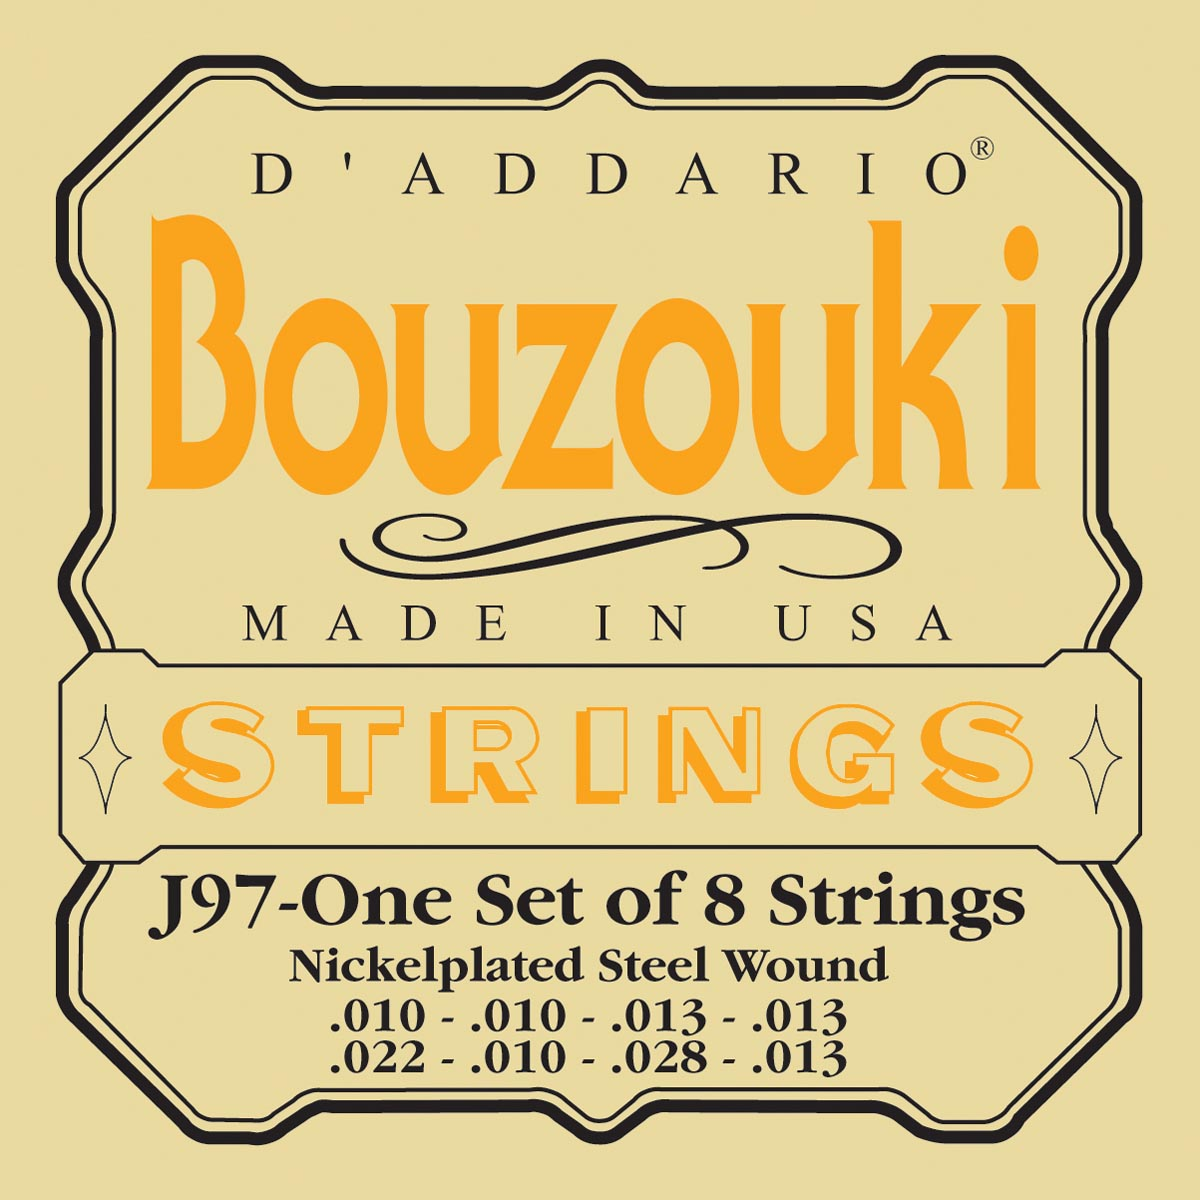 DADDARIO EJ97 GREEK BOUZOUKI, 8-STRING, NICKEL WOUND